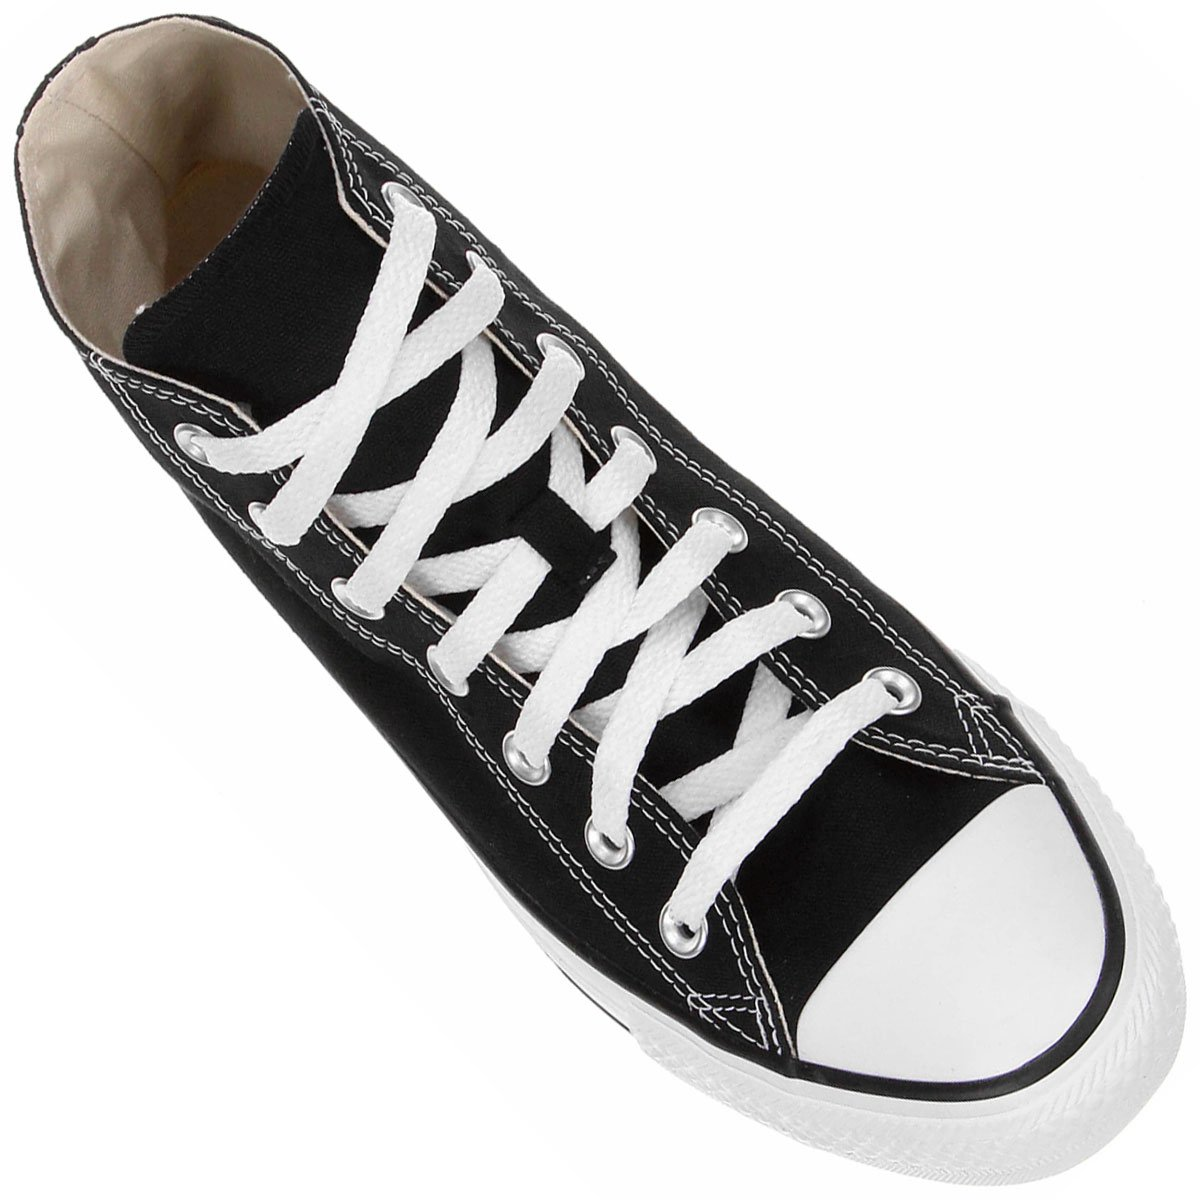 All HI Preto AS Converse CT Star e Tênis Branco q75Ywnq